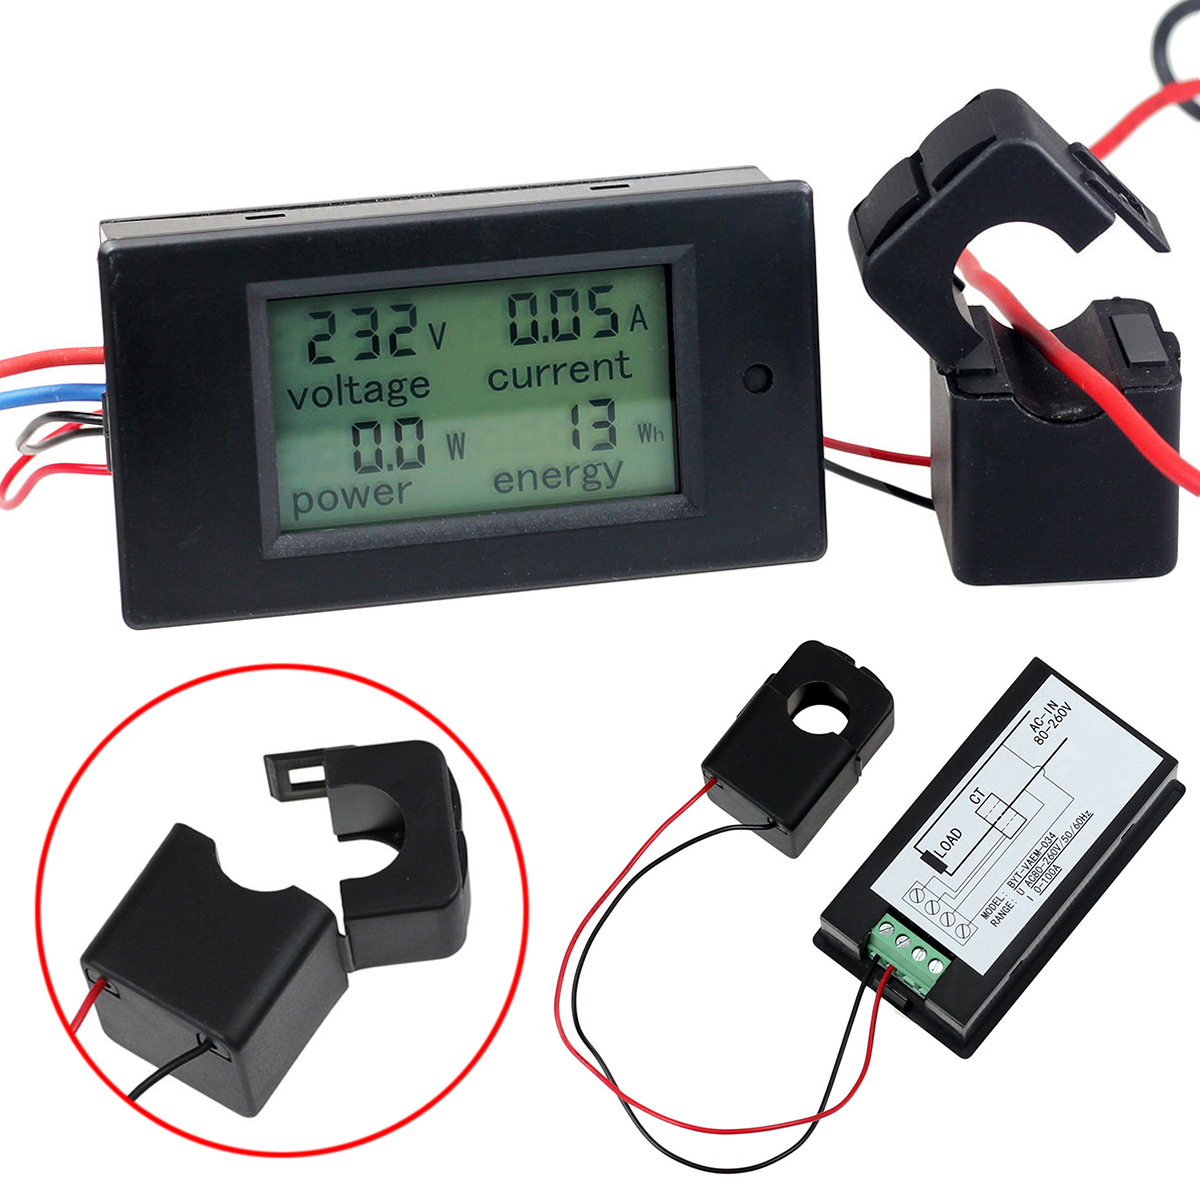 Digital AC 80-260V 100A Volt Amp Meter Power KWh Watt Meter Monitor Voltmeter Ammeter Open Close CT Voltage Indicator Mayitr voltmeter ammeter ac 110v 220v 20a 100a ac current voltage meter watt kwh monitor power factor frequency meter